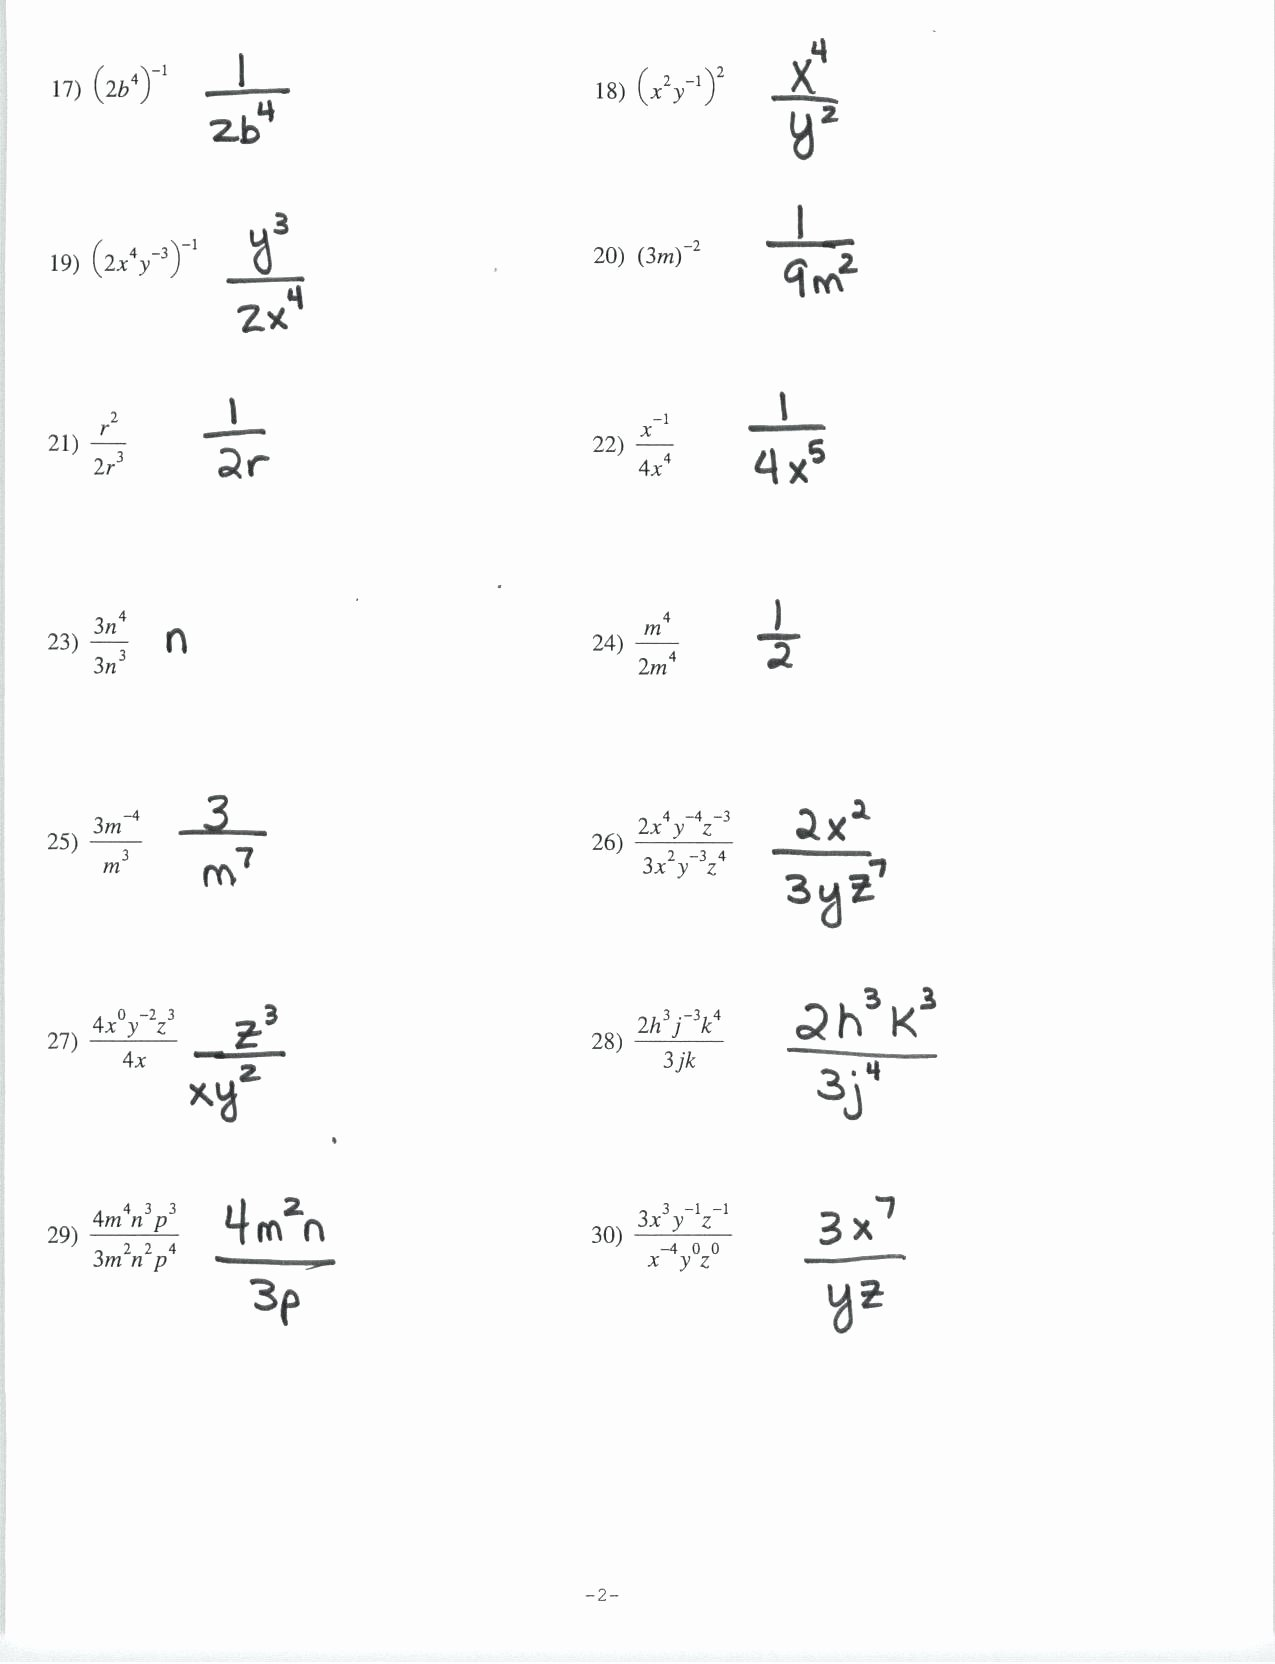 Radicals and Rational Exponents Worksheet Beautiful Preschool Worksheets 45 Incredible Radicals and Rational